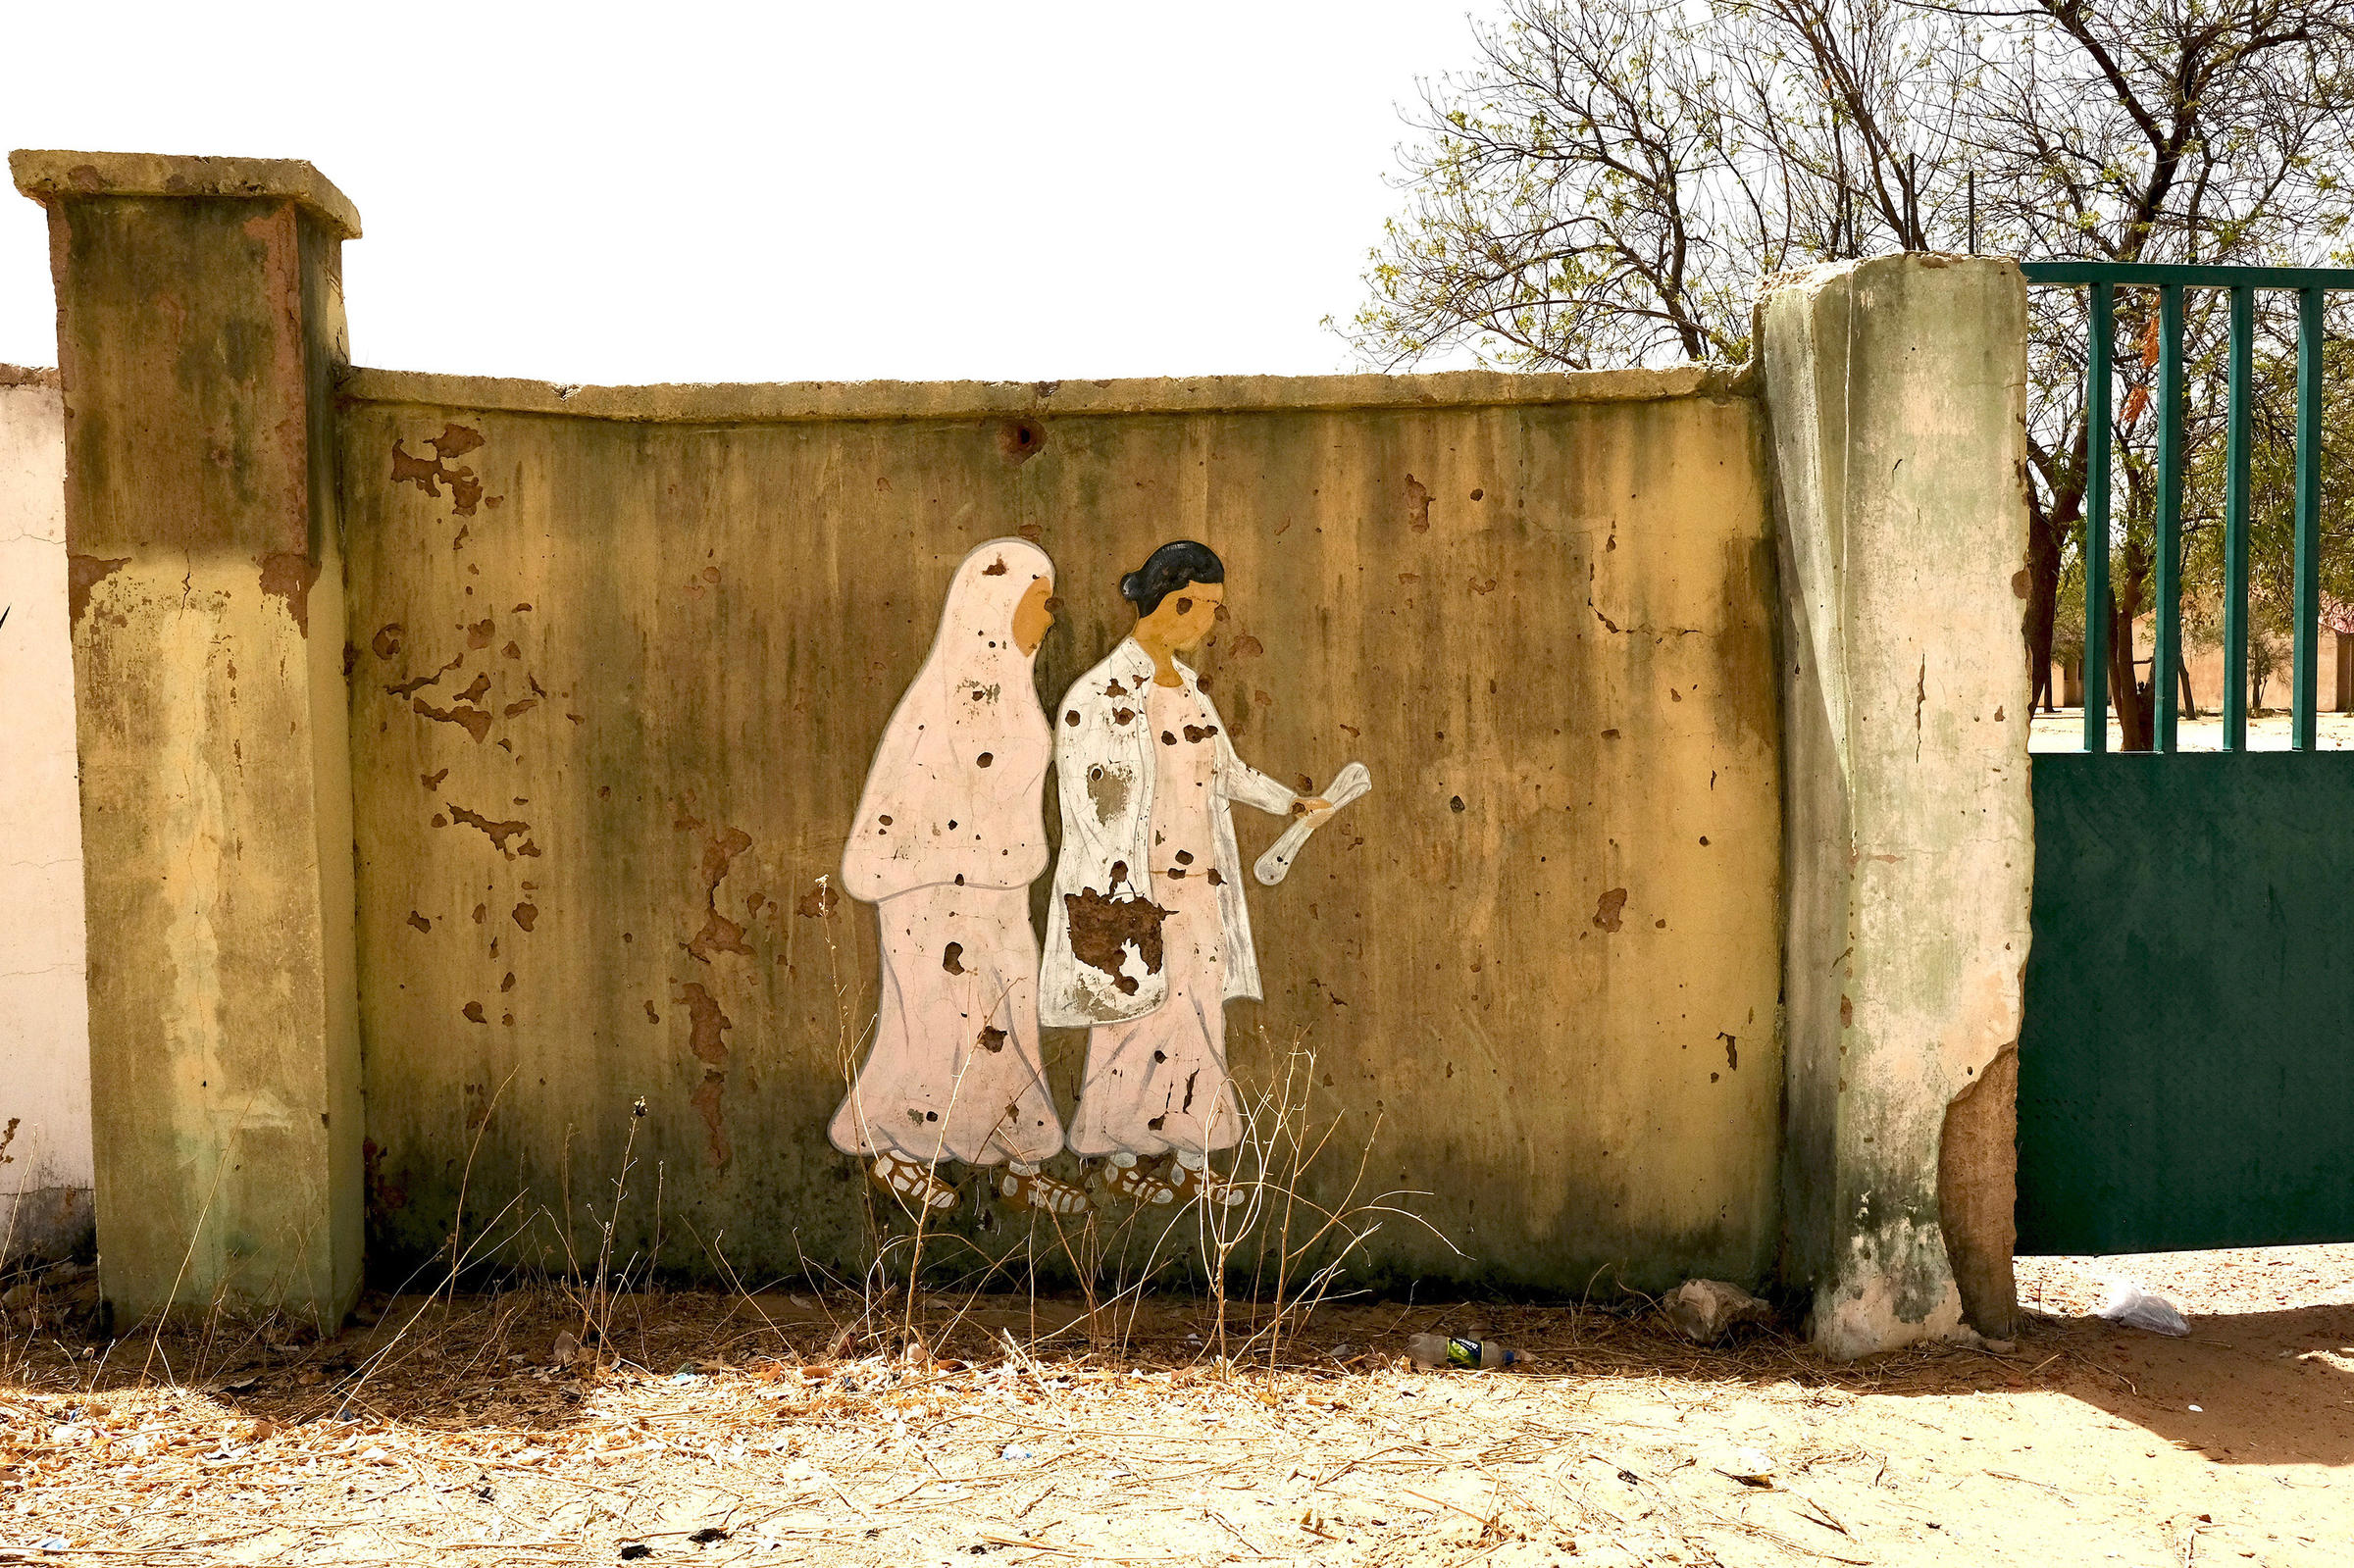 Photo: Dapchi school Mural riddled with bullet holes